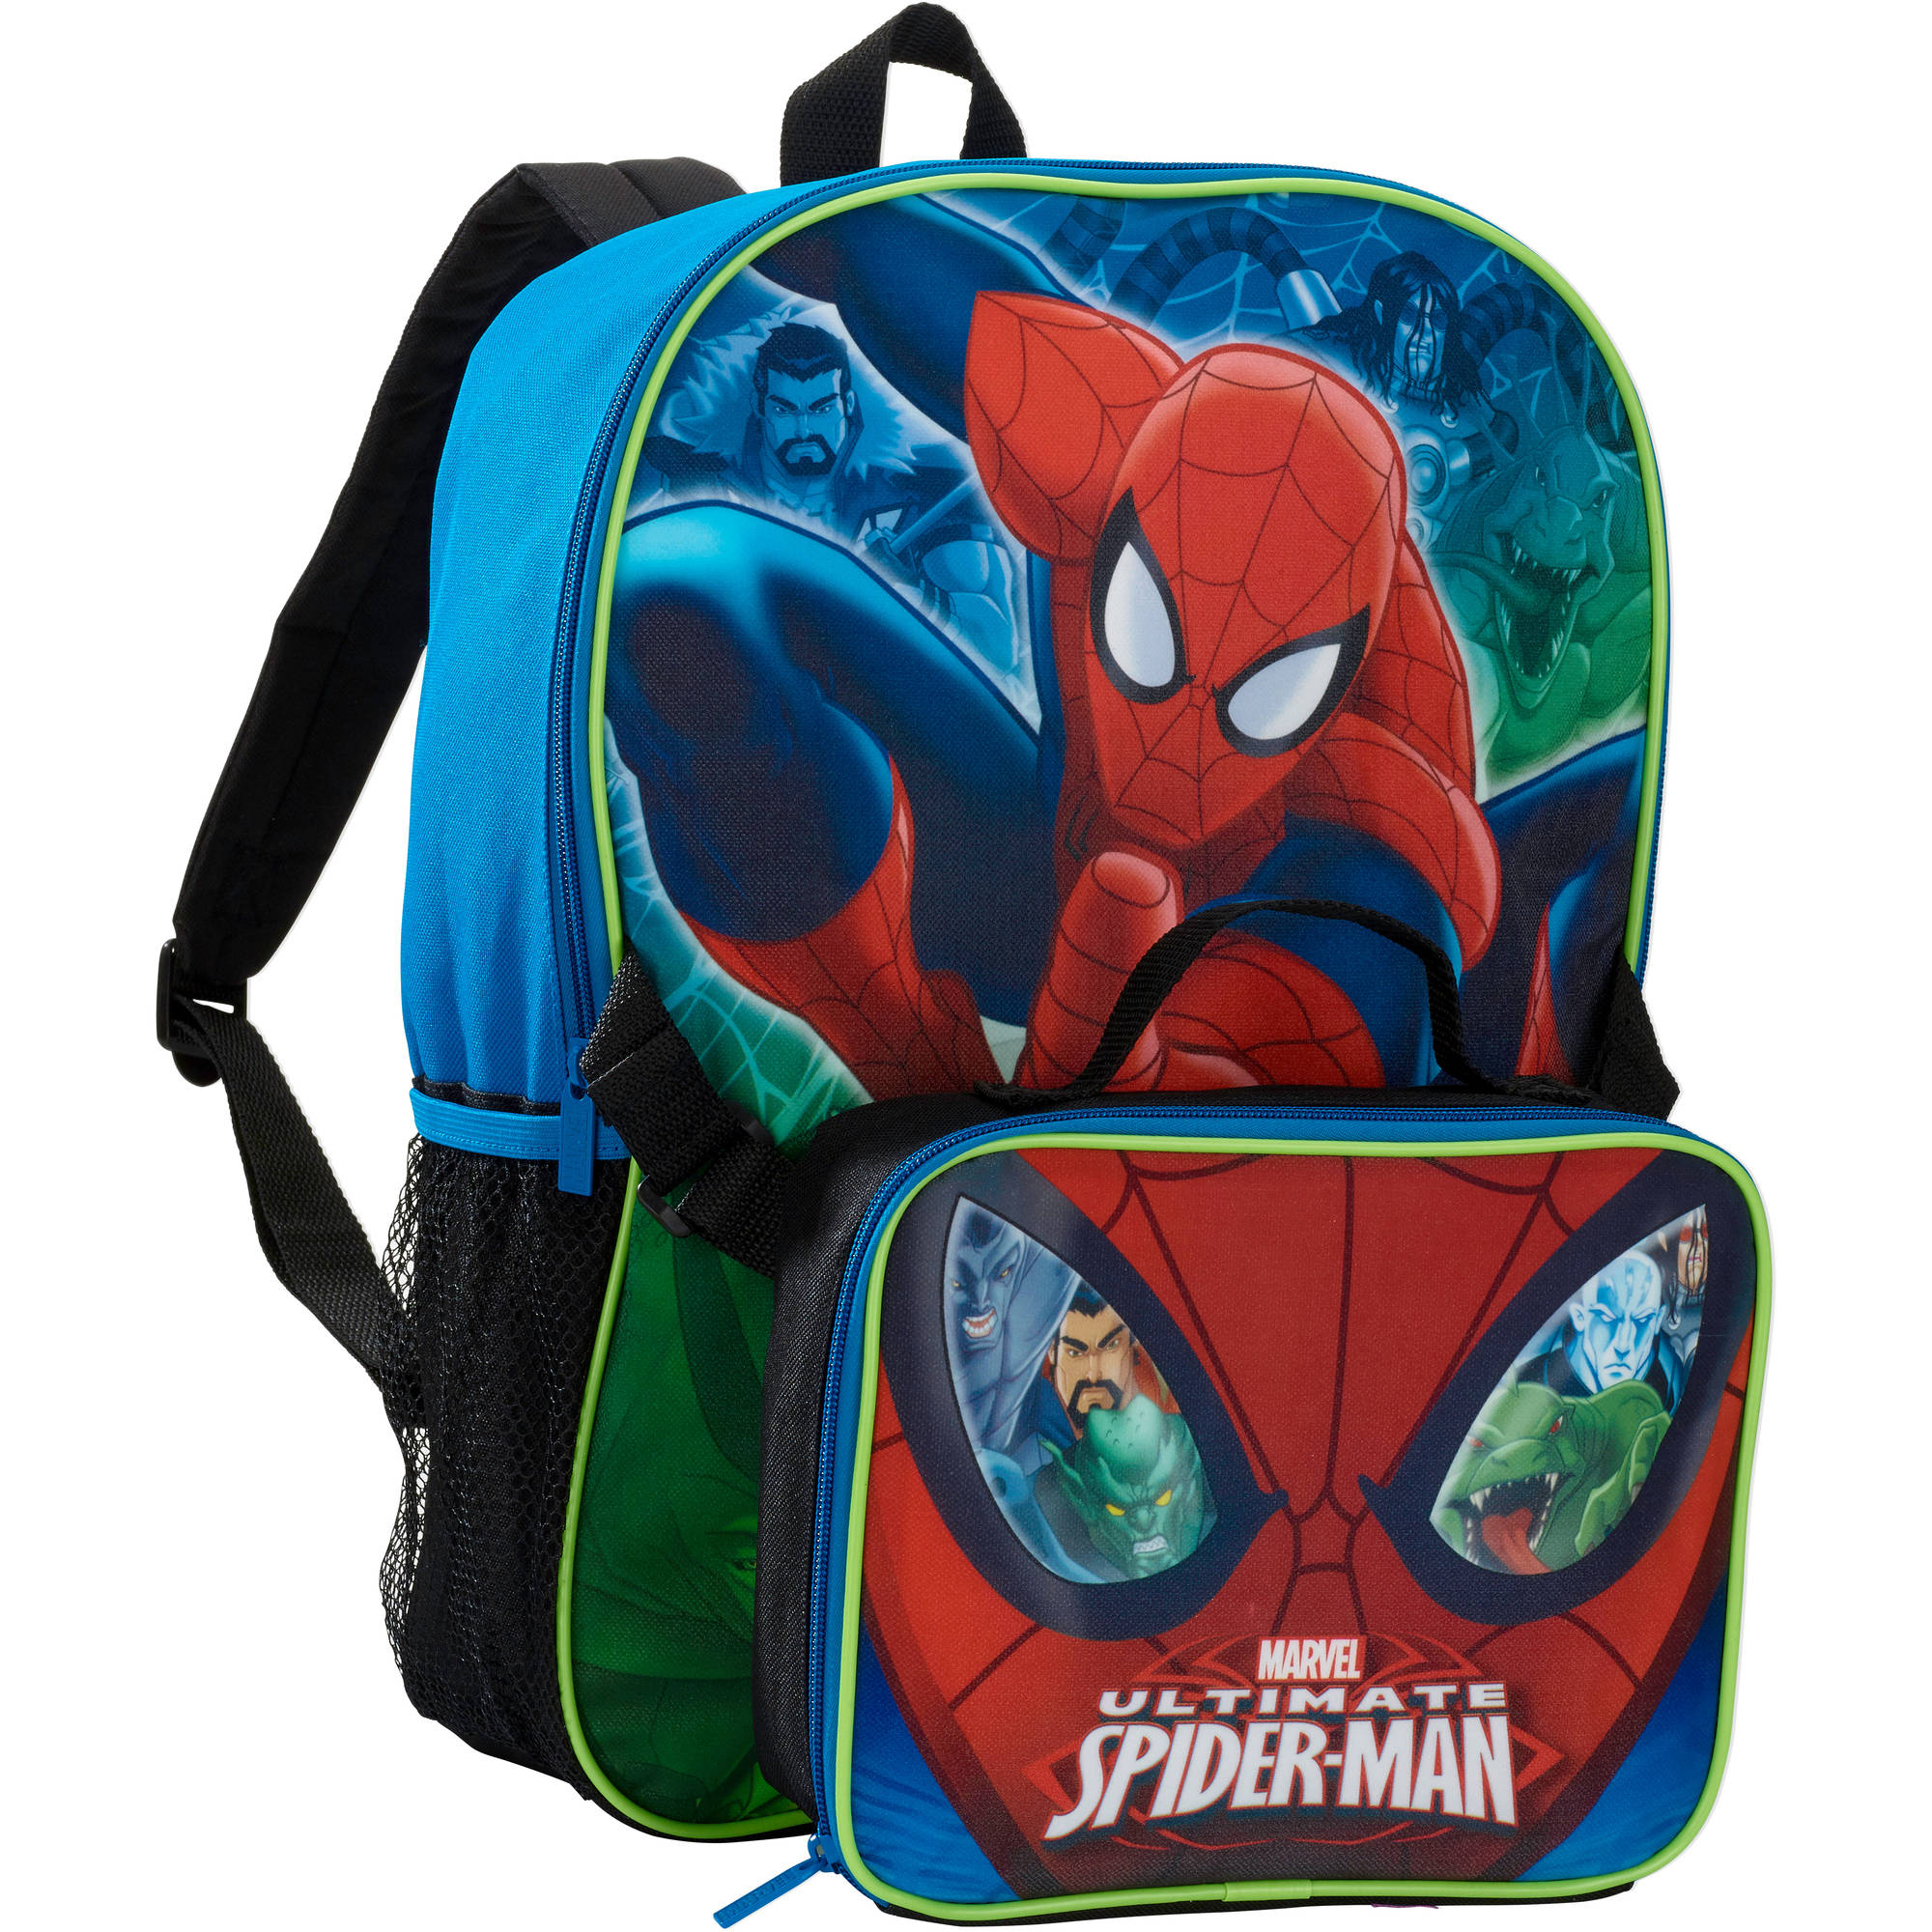 Spider-Man Backpack with Lunch Kit